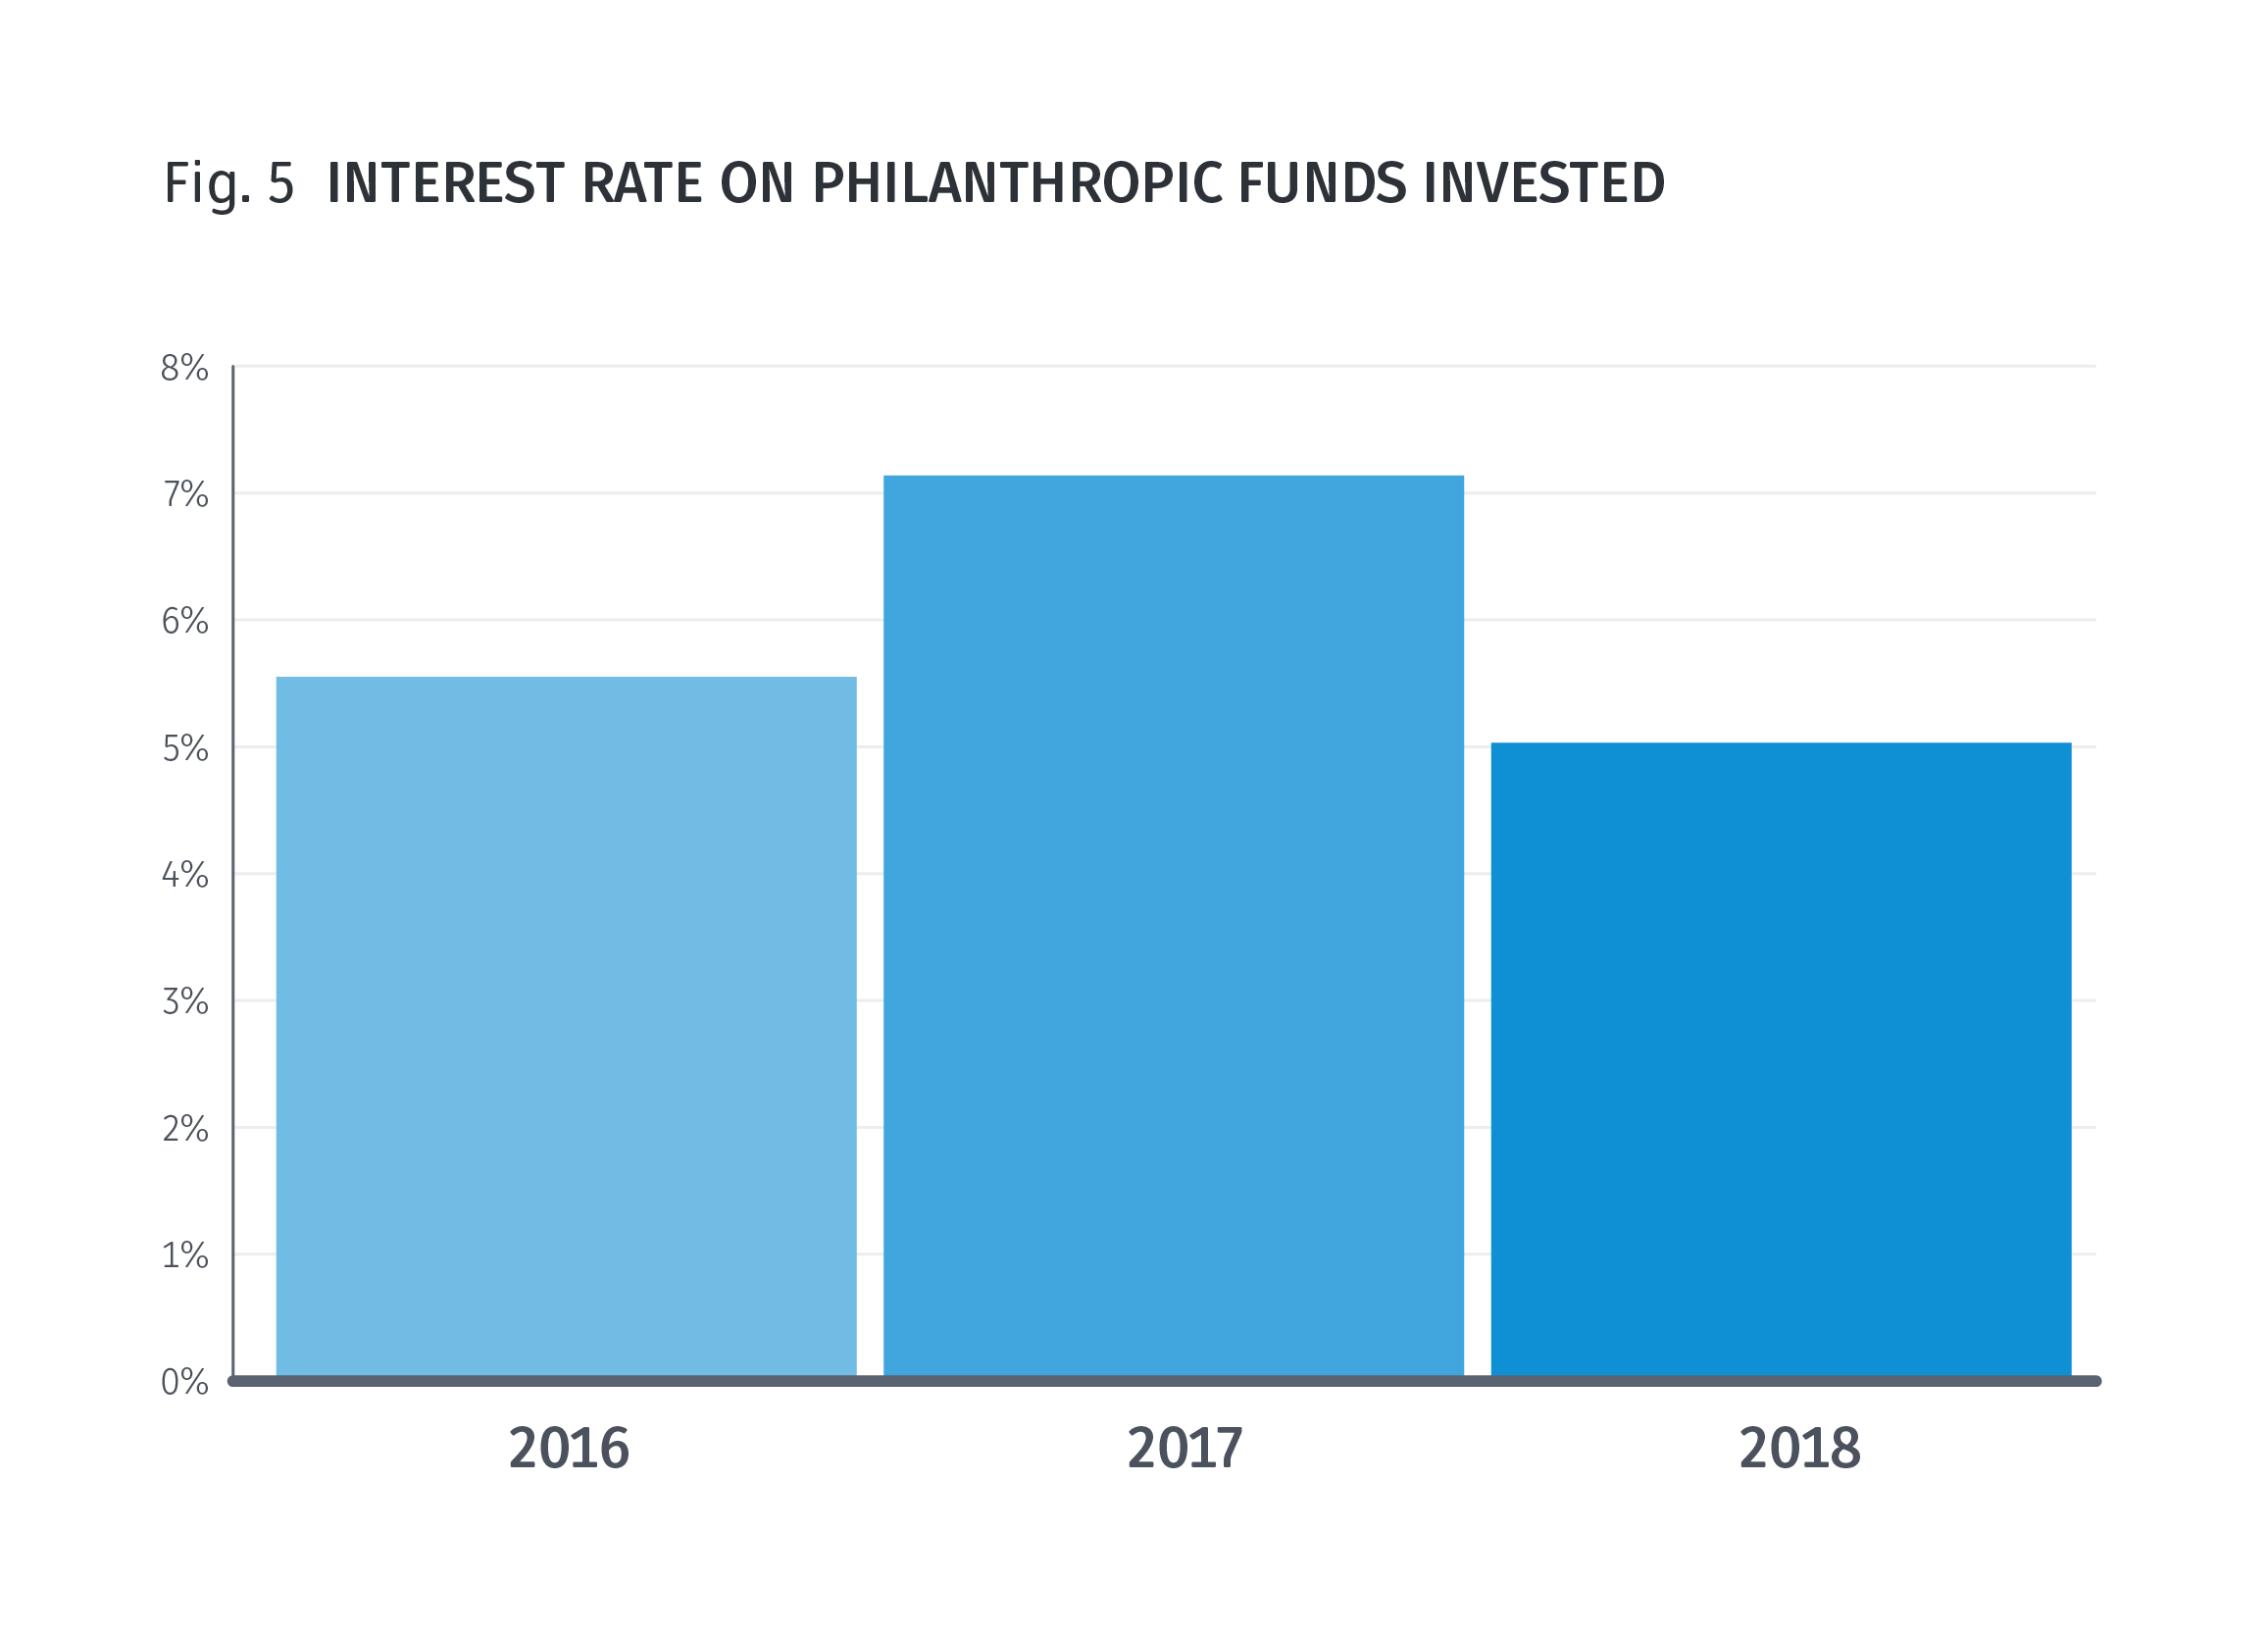 Fig.5 Interest rate on philanthropic funds invested - 5% in 2018